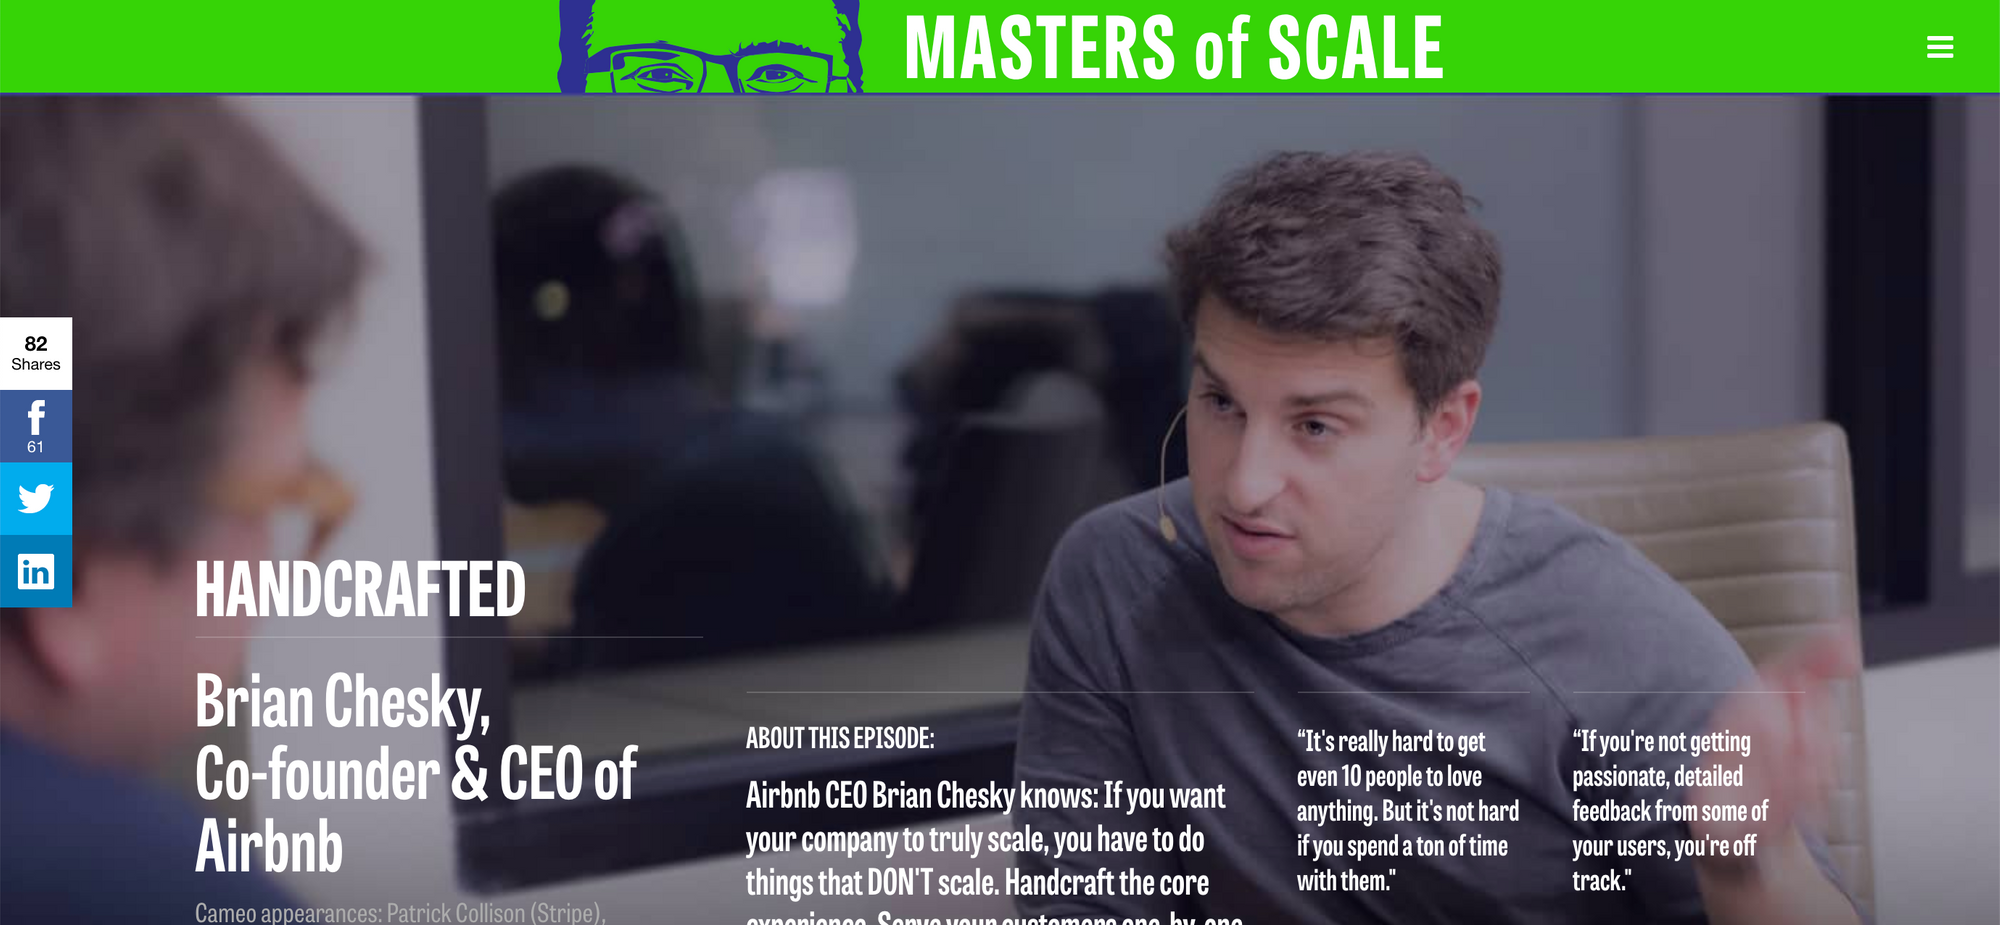 Masters of Scale - Brian Chesky